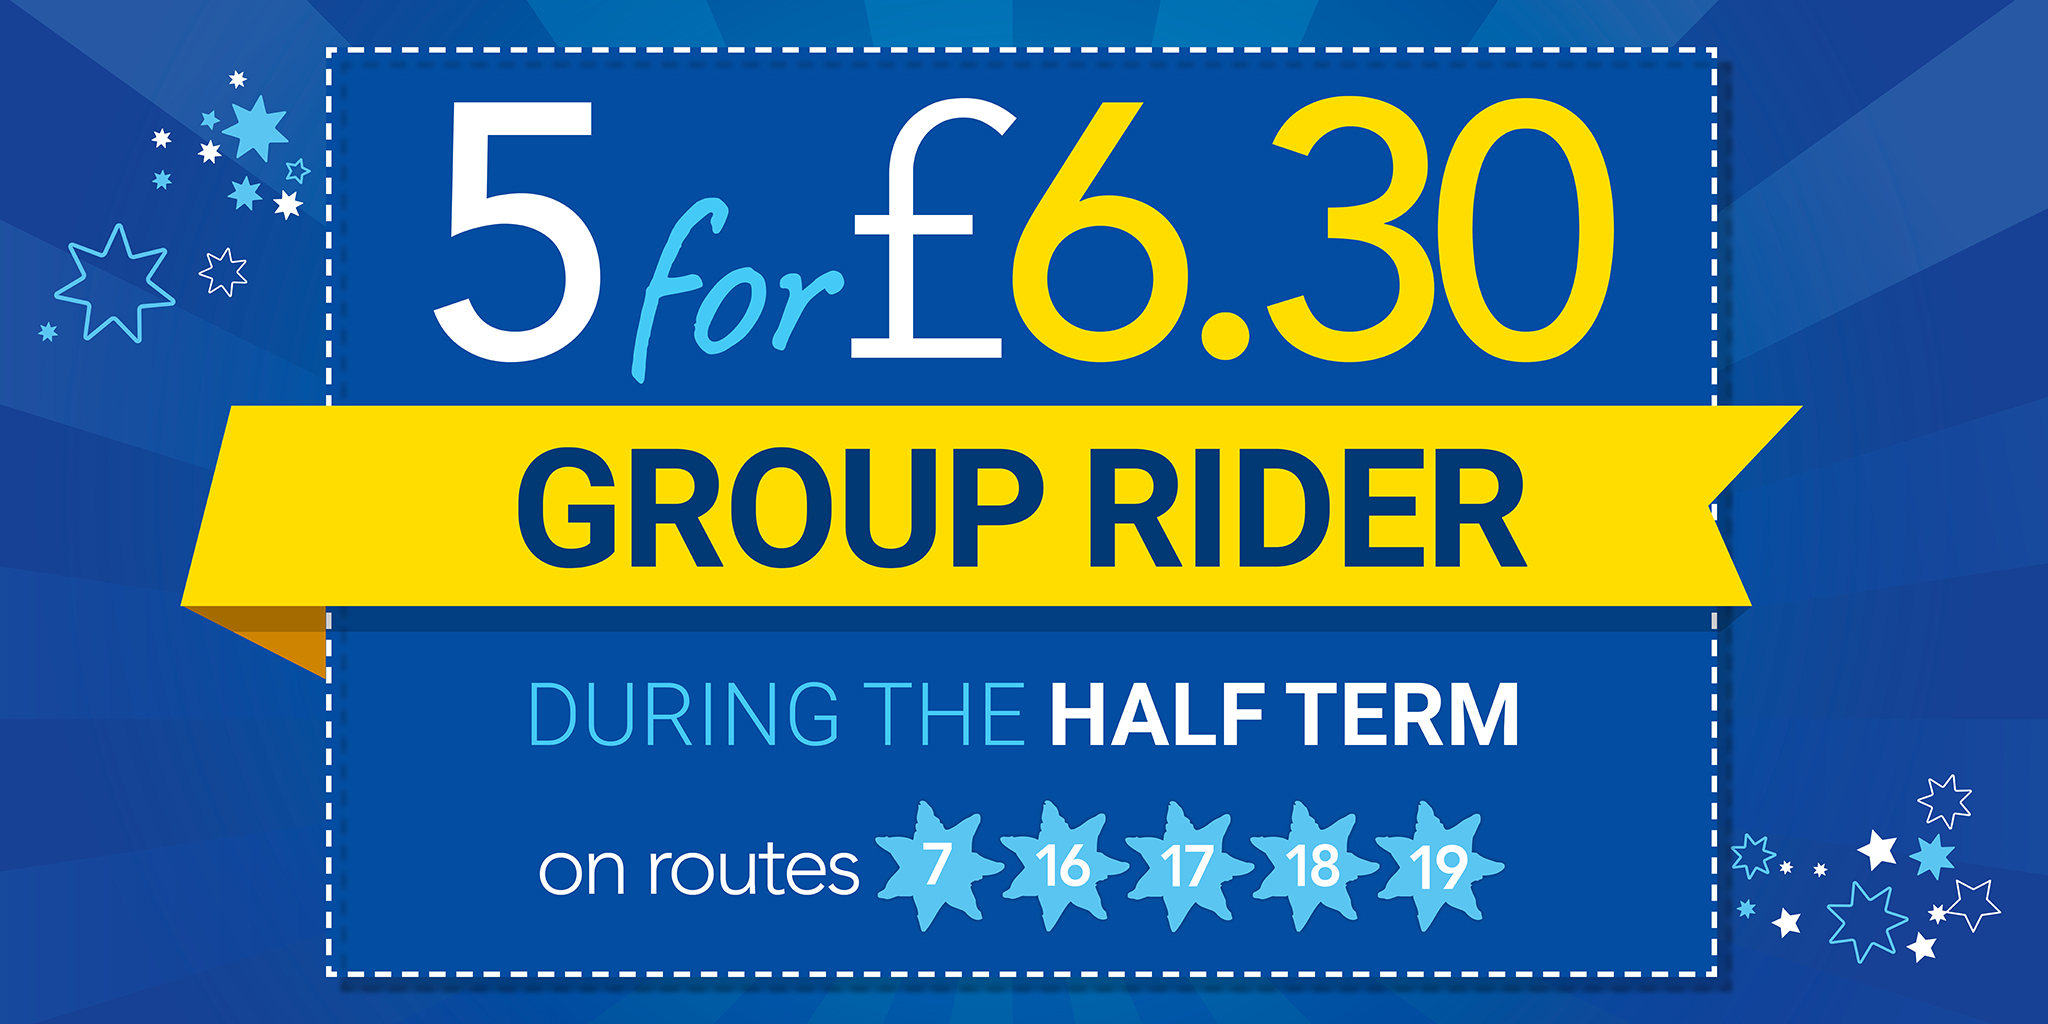 Image of 5 for £6.30 group rider during the half term